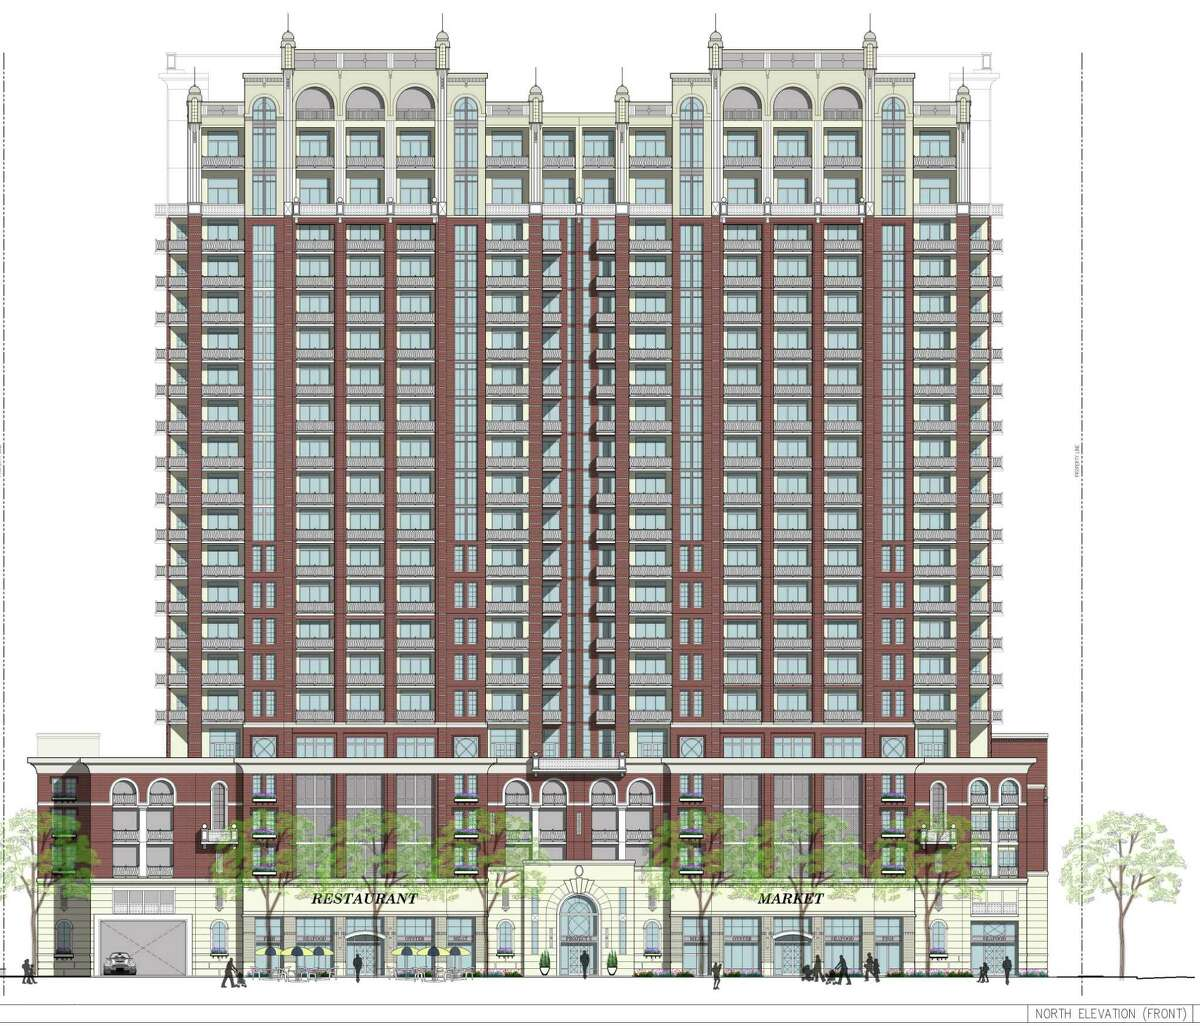 This is the most recent artist's rendering of the proposed apartment project, commonly known as the Ashby high-rise.